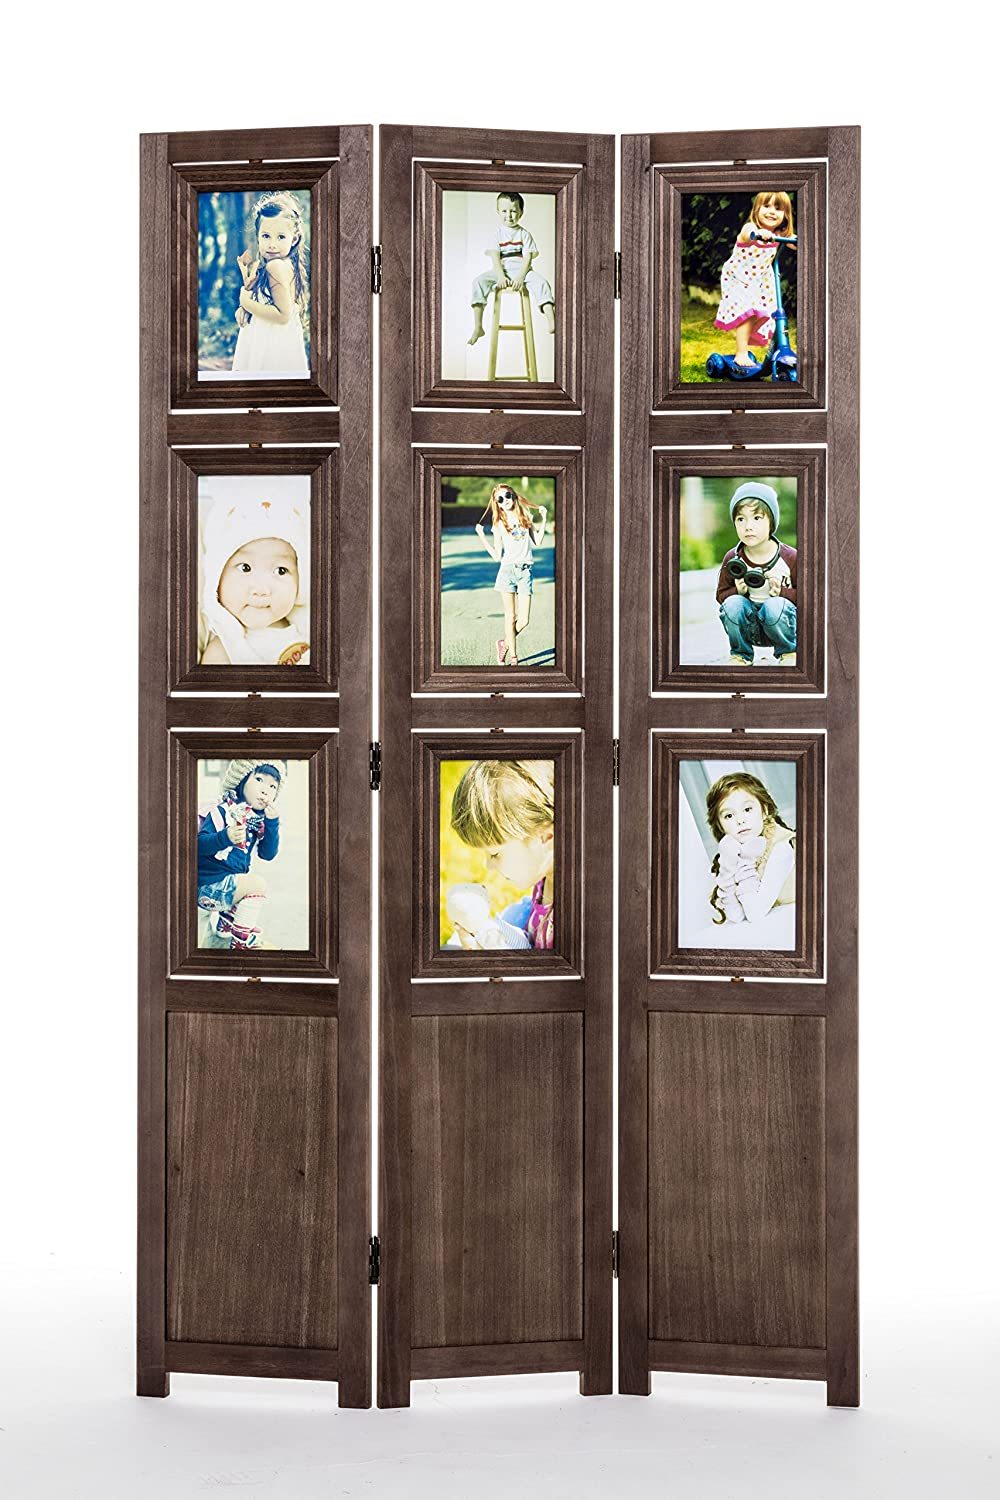 Room dividers with picture frames photo privacy floor - Room divider picture frames ...